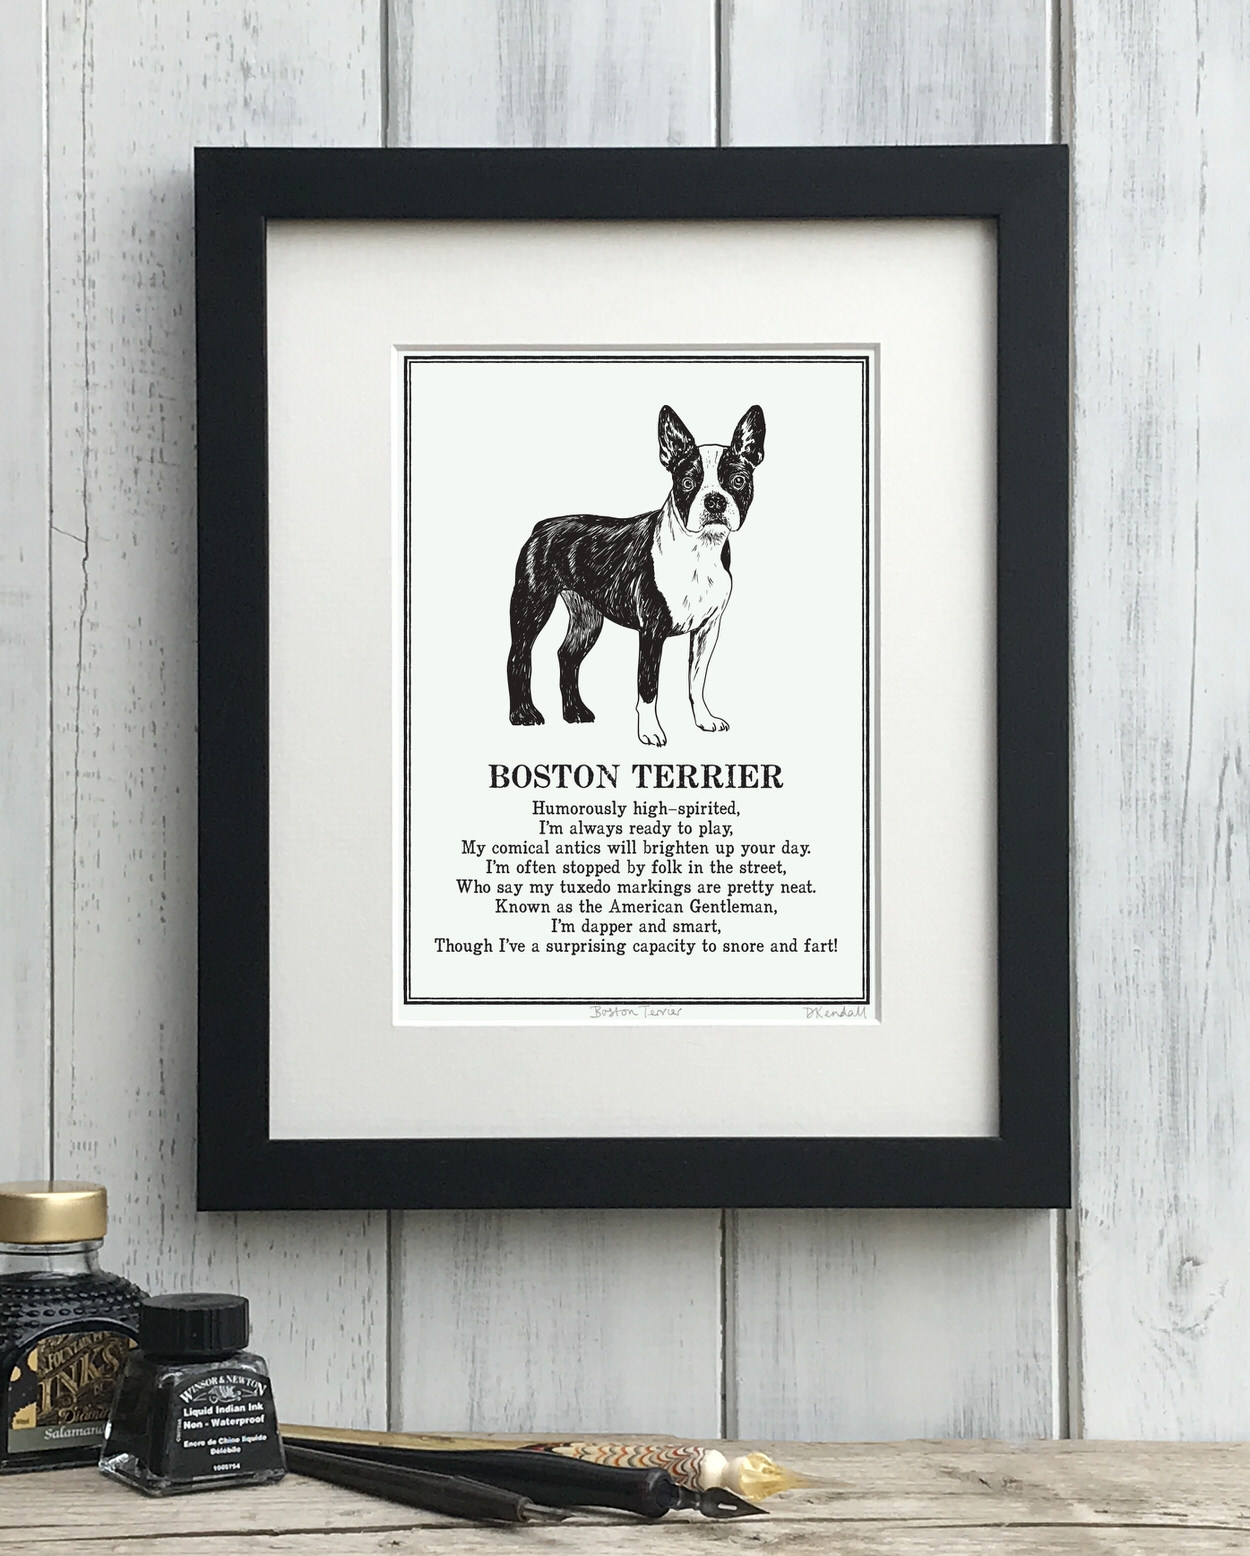 Boston Terrier print illustrated poem by The Enlightened Hound